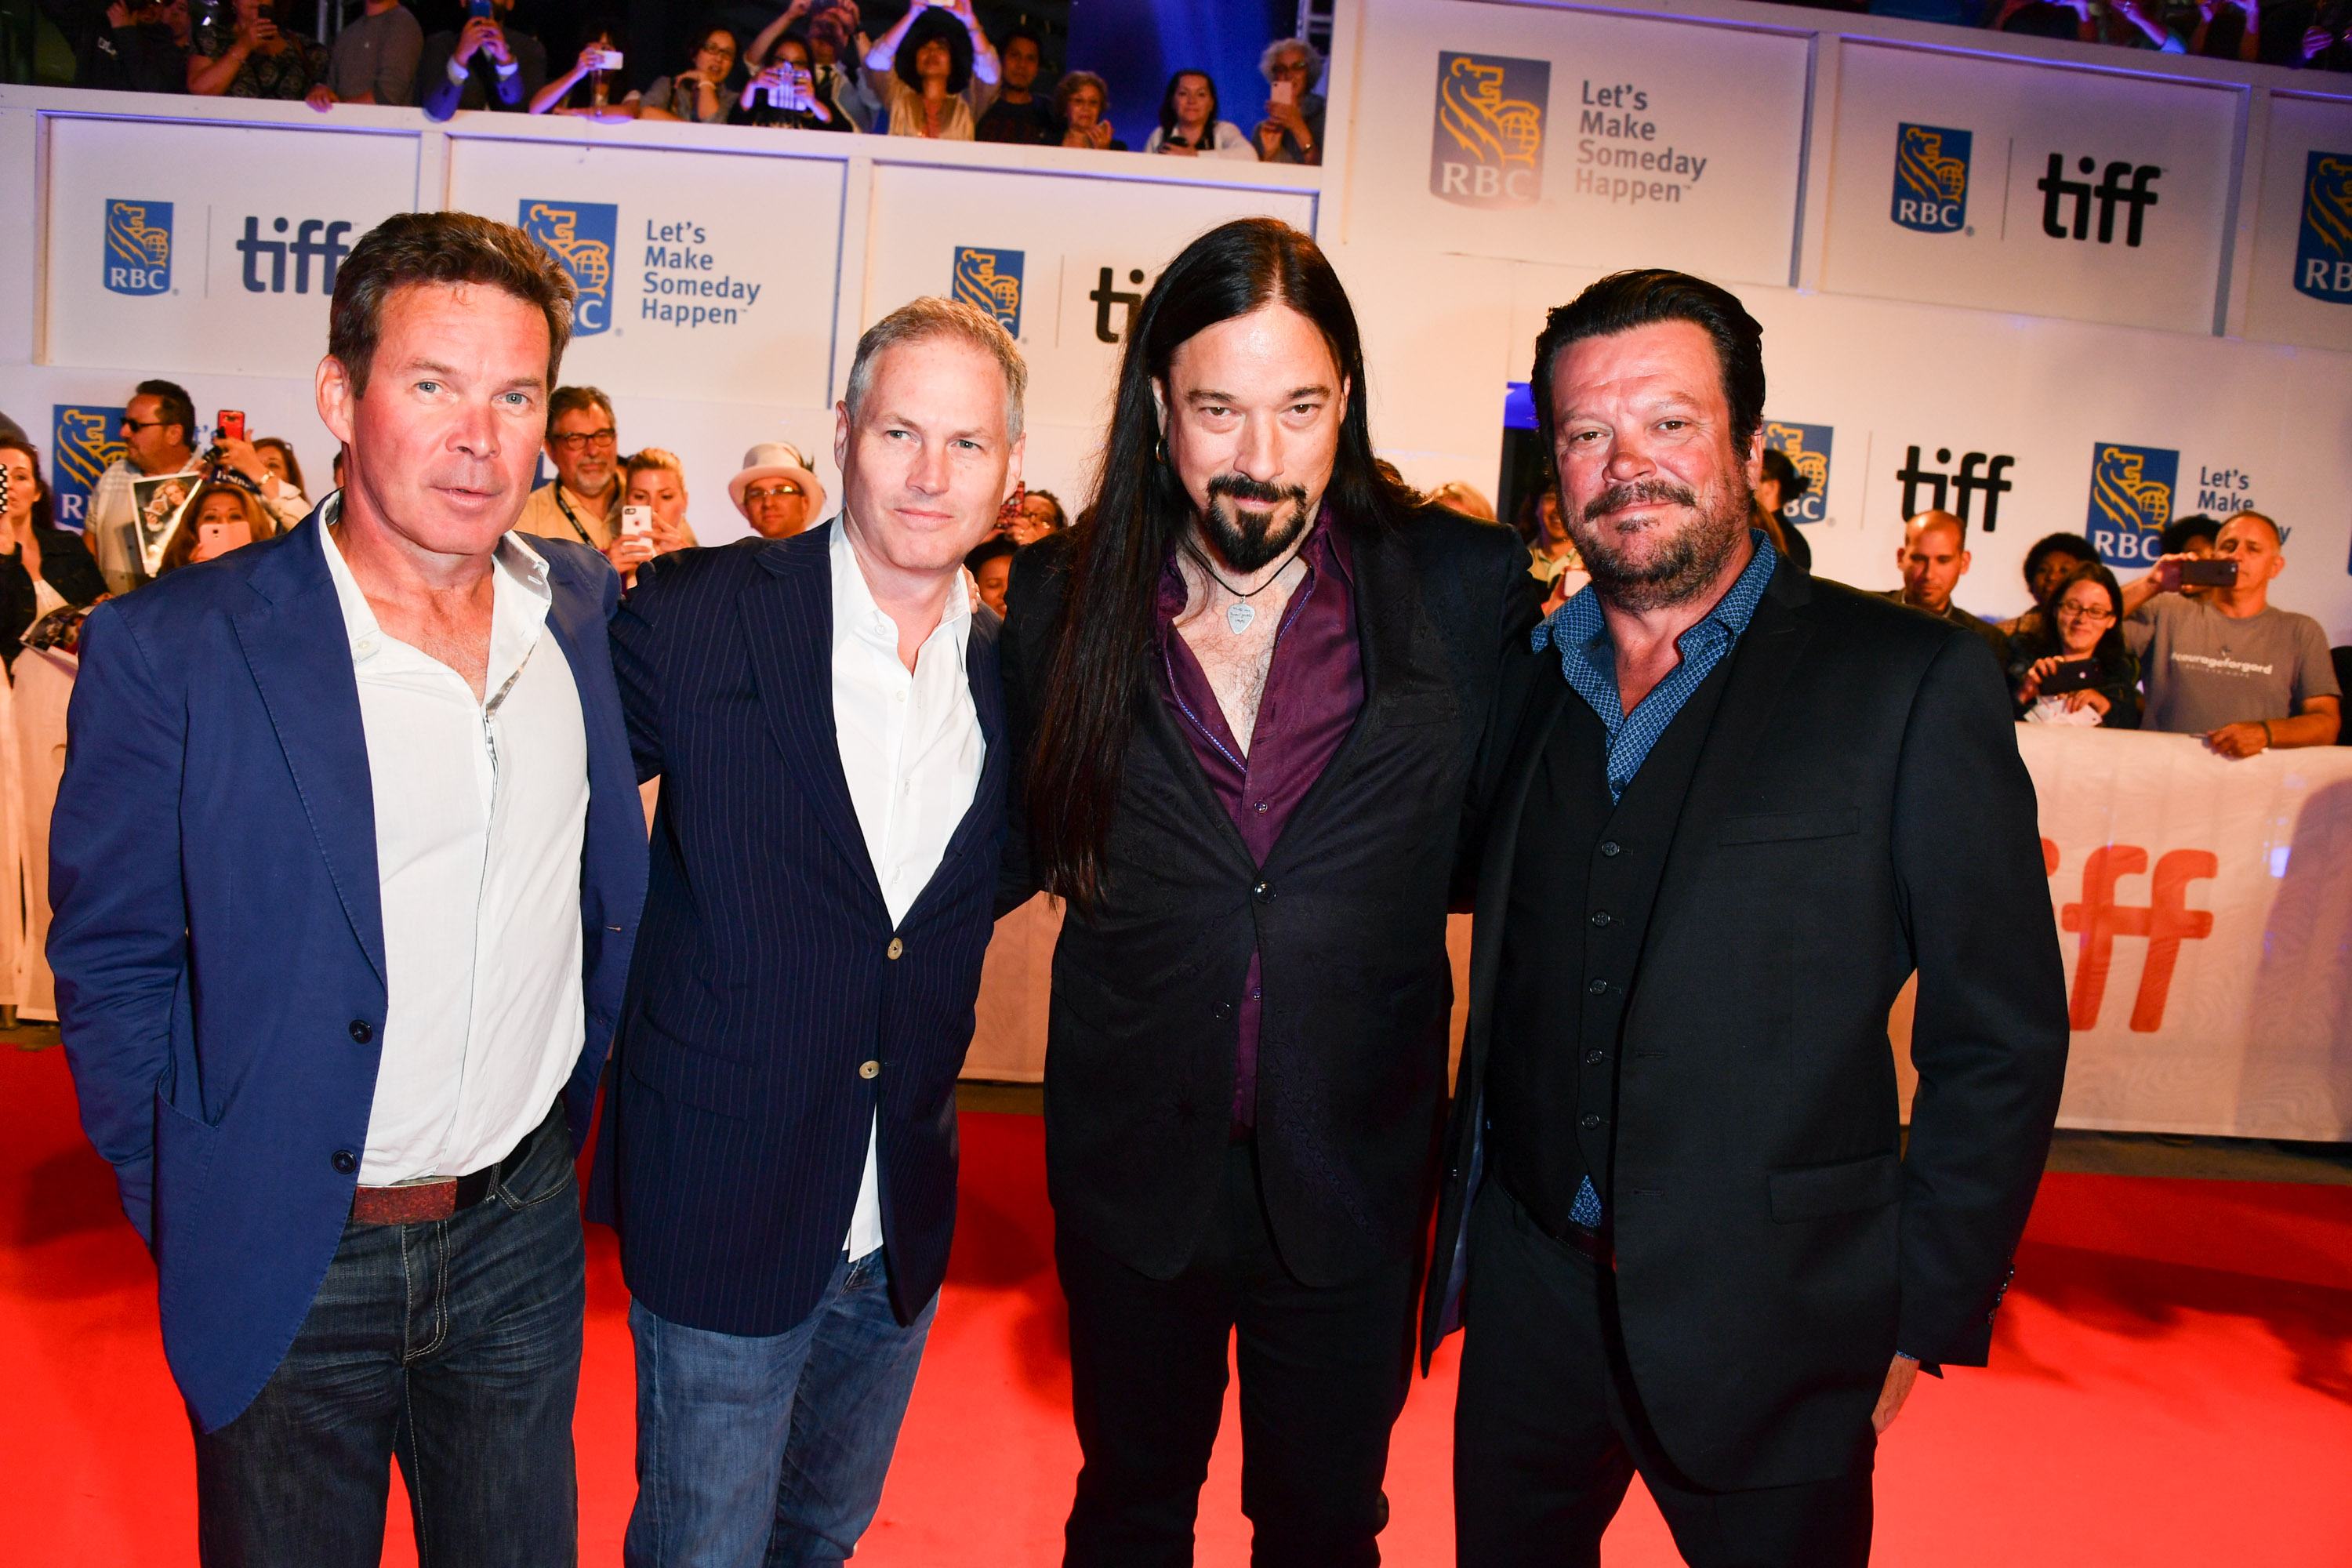 The Tragically Hip (minus Gord Downie), from left: Gord Sinclair, Johnny Fay, Rob Baker and Paul Langlois,...